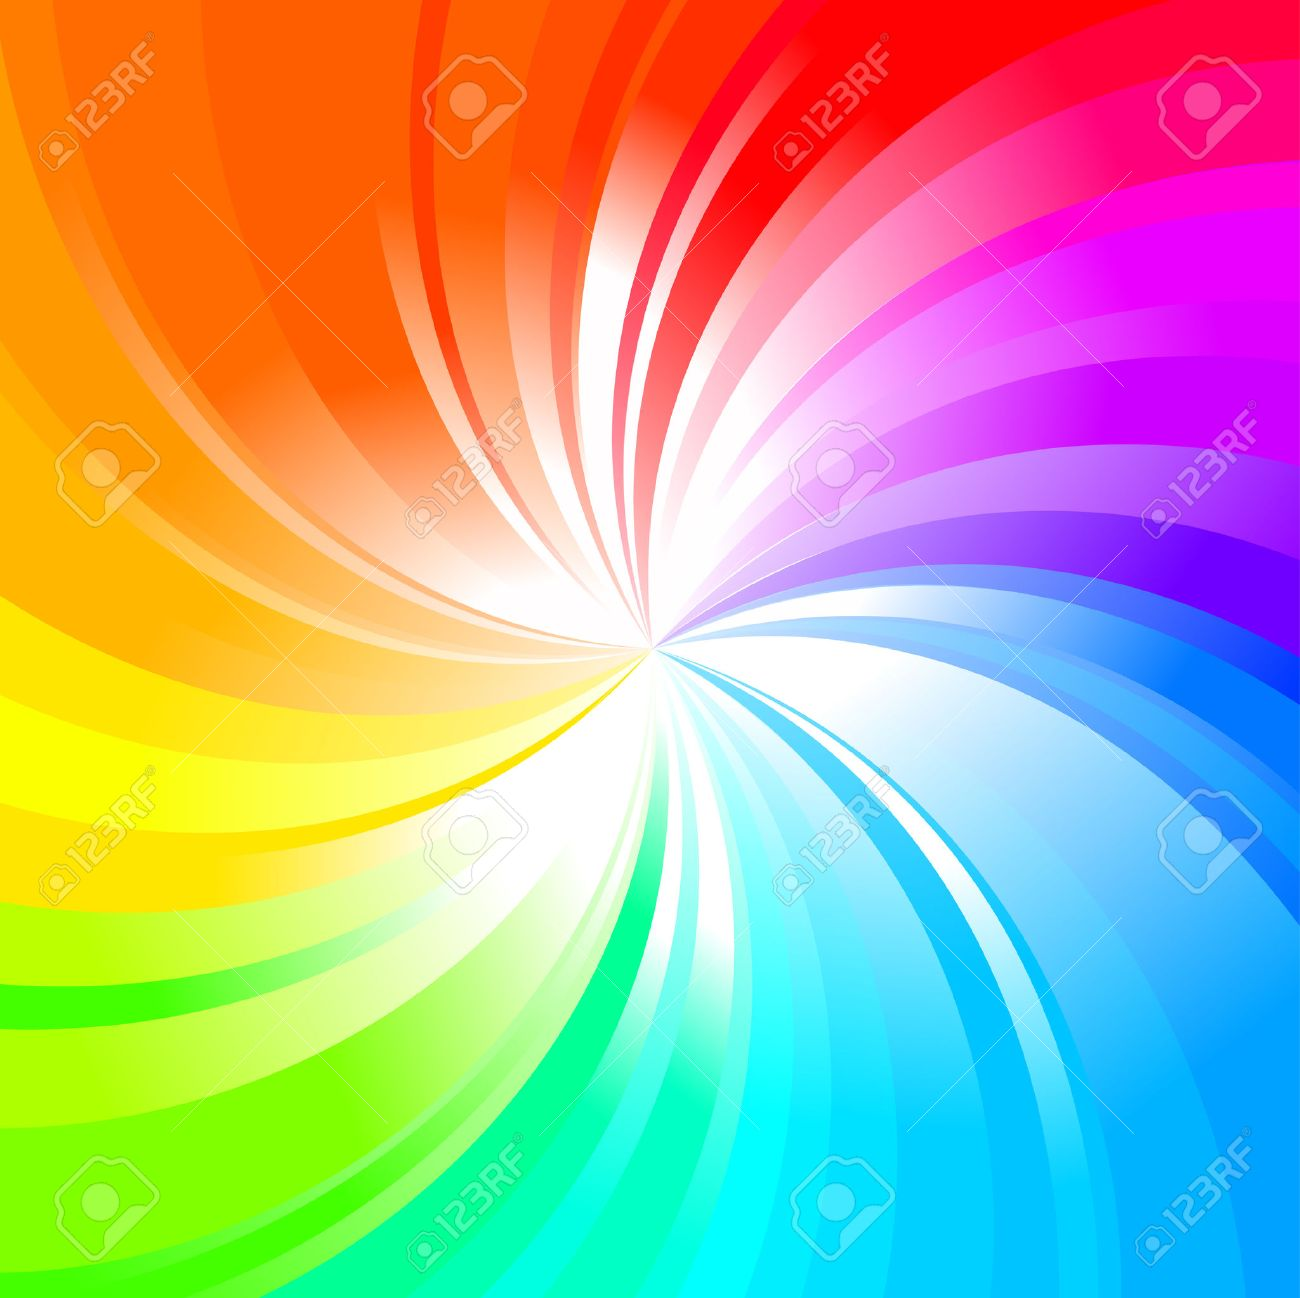 multicolored abstract rainbow background royalty free cliparts